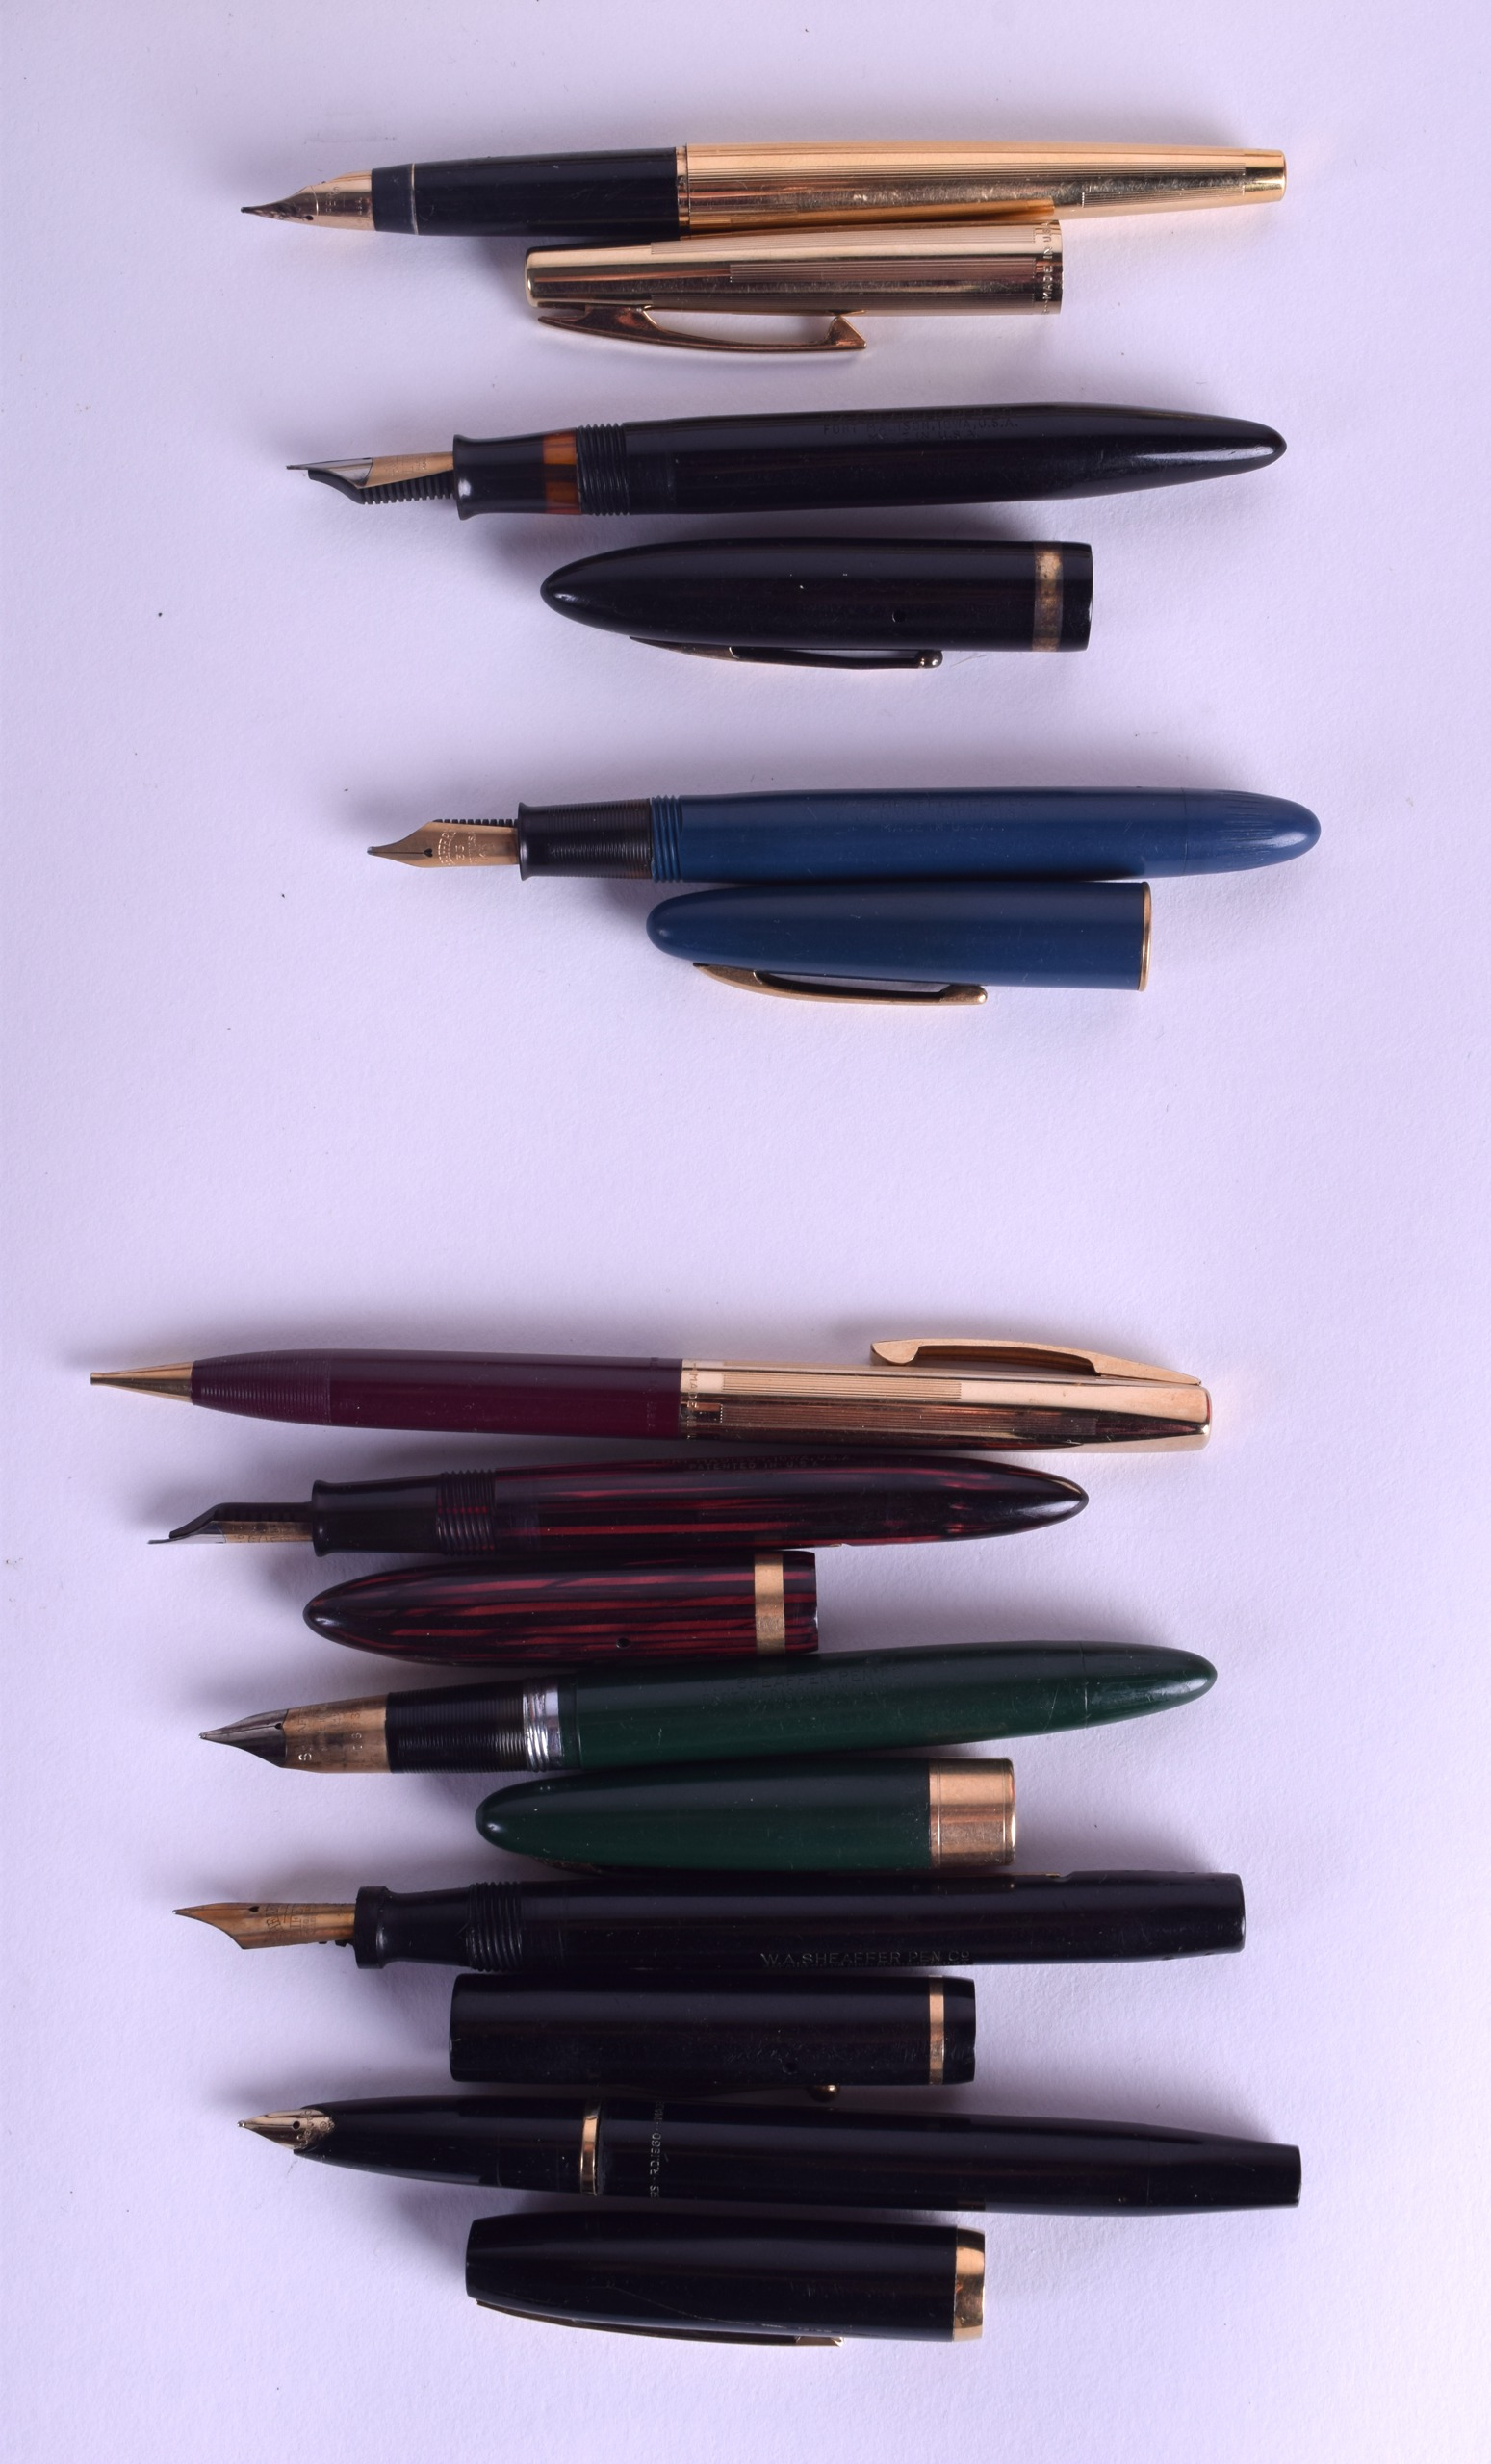 Lot 865 - A COLLECTION OF SHEAFFERS PENS including fountains, ball points & mechanical pencils, twelve with